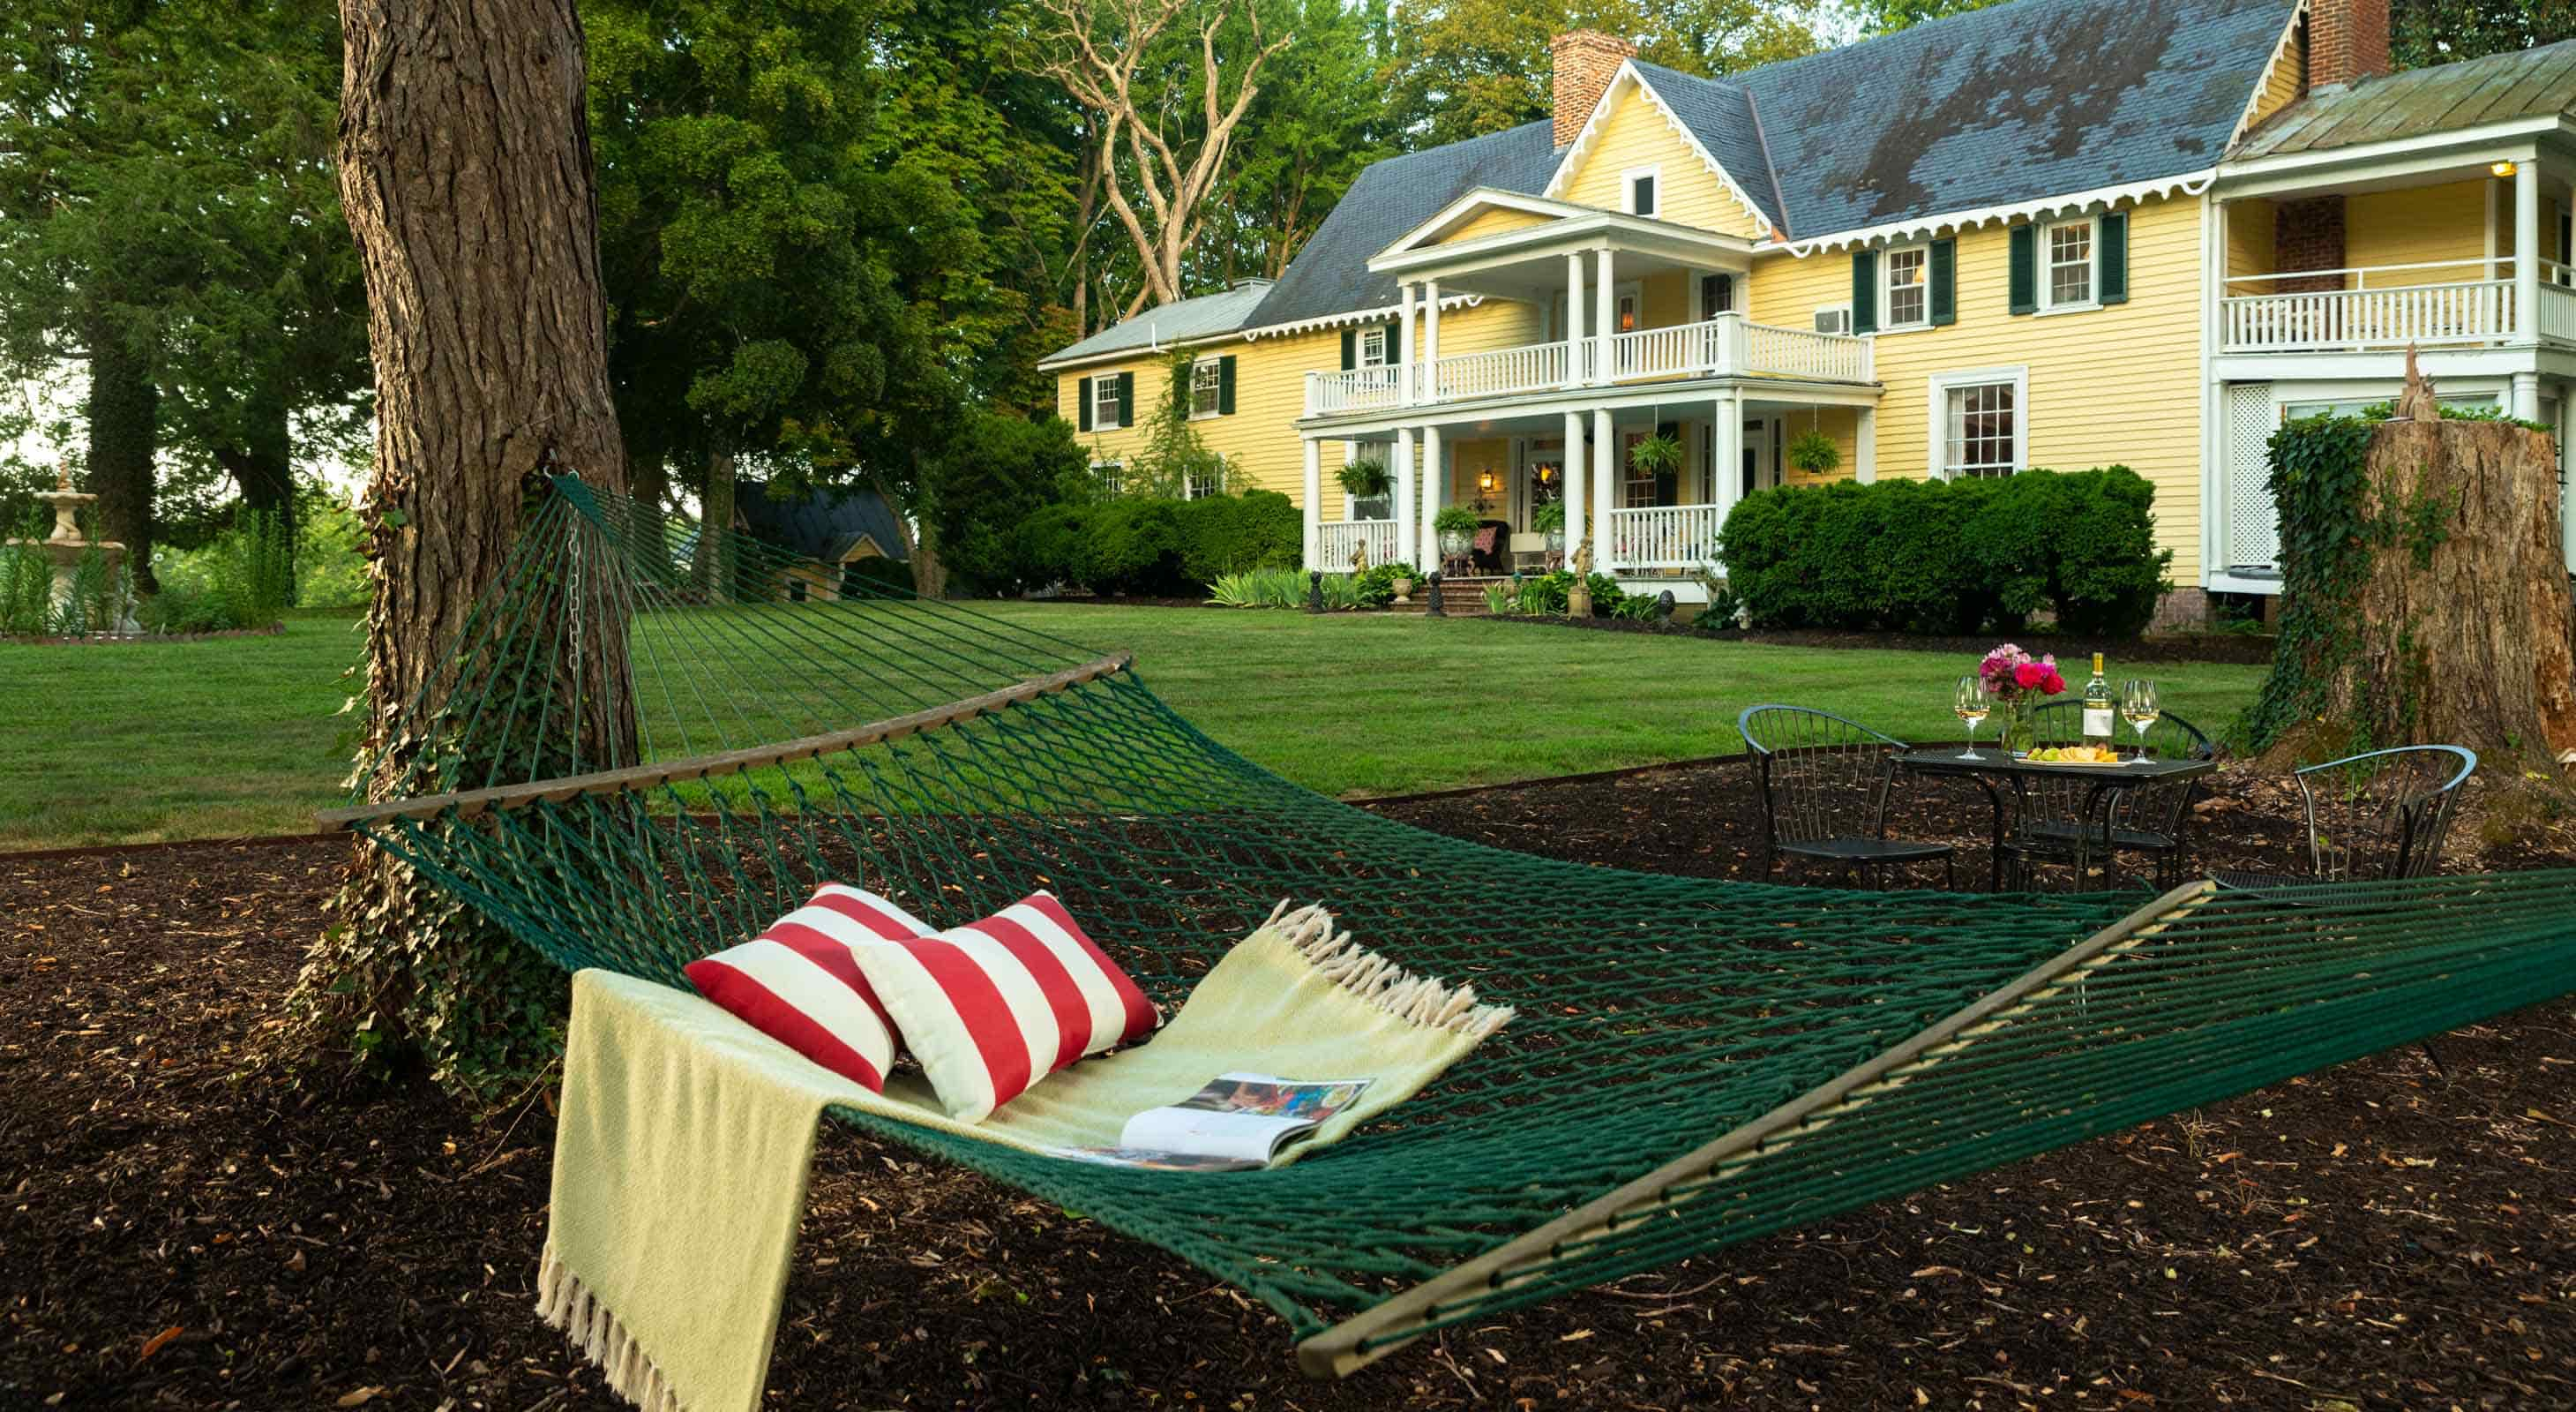 A hammock with a pillow and a book with Prospect Hill in the background